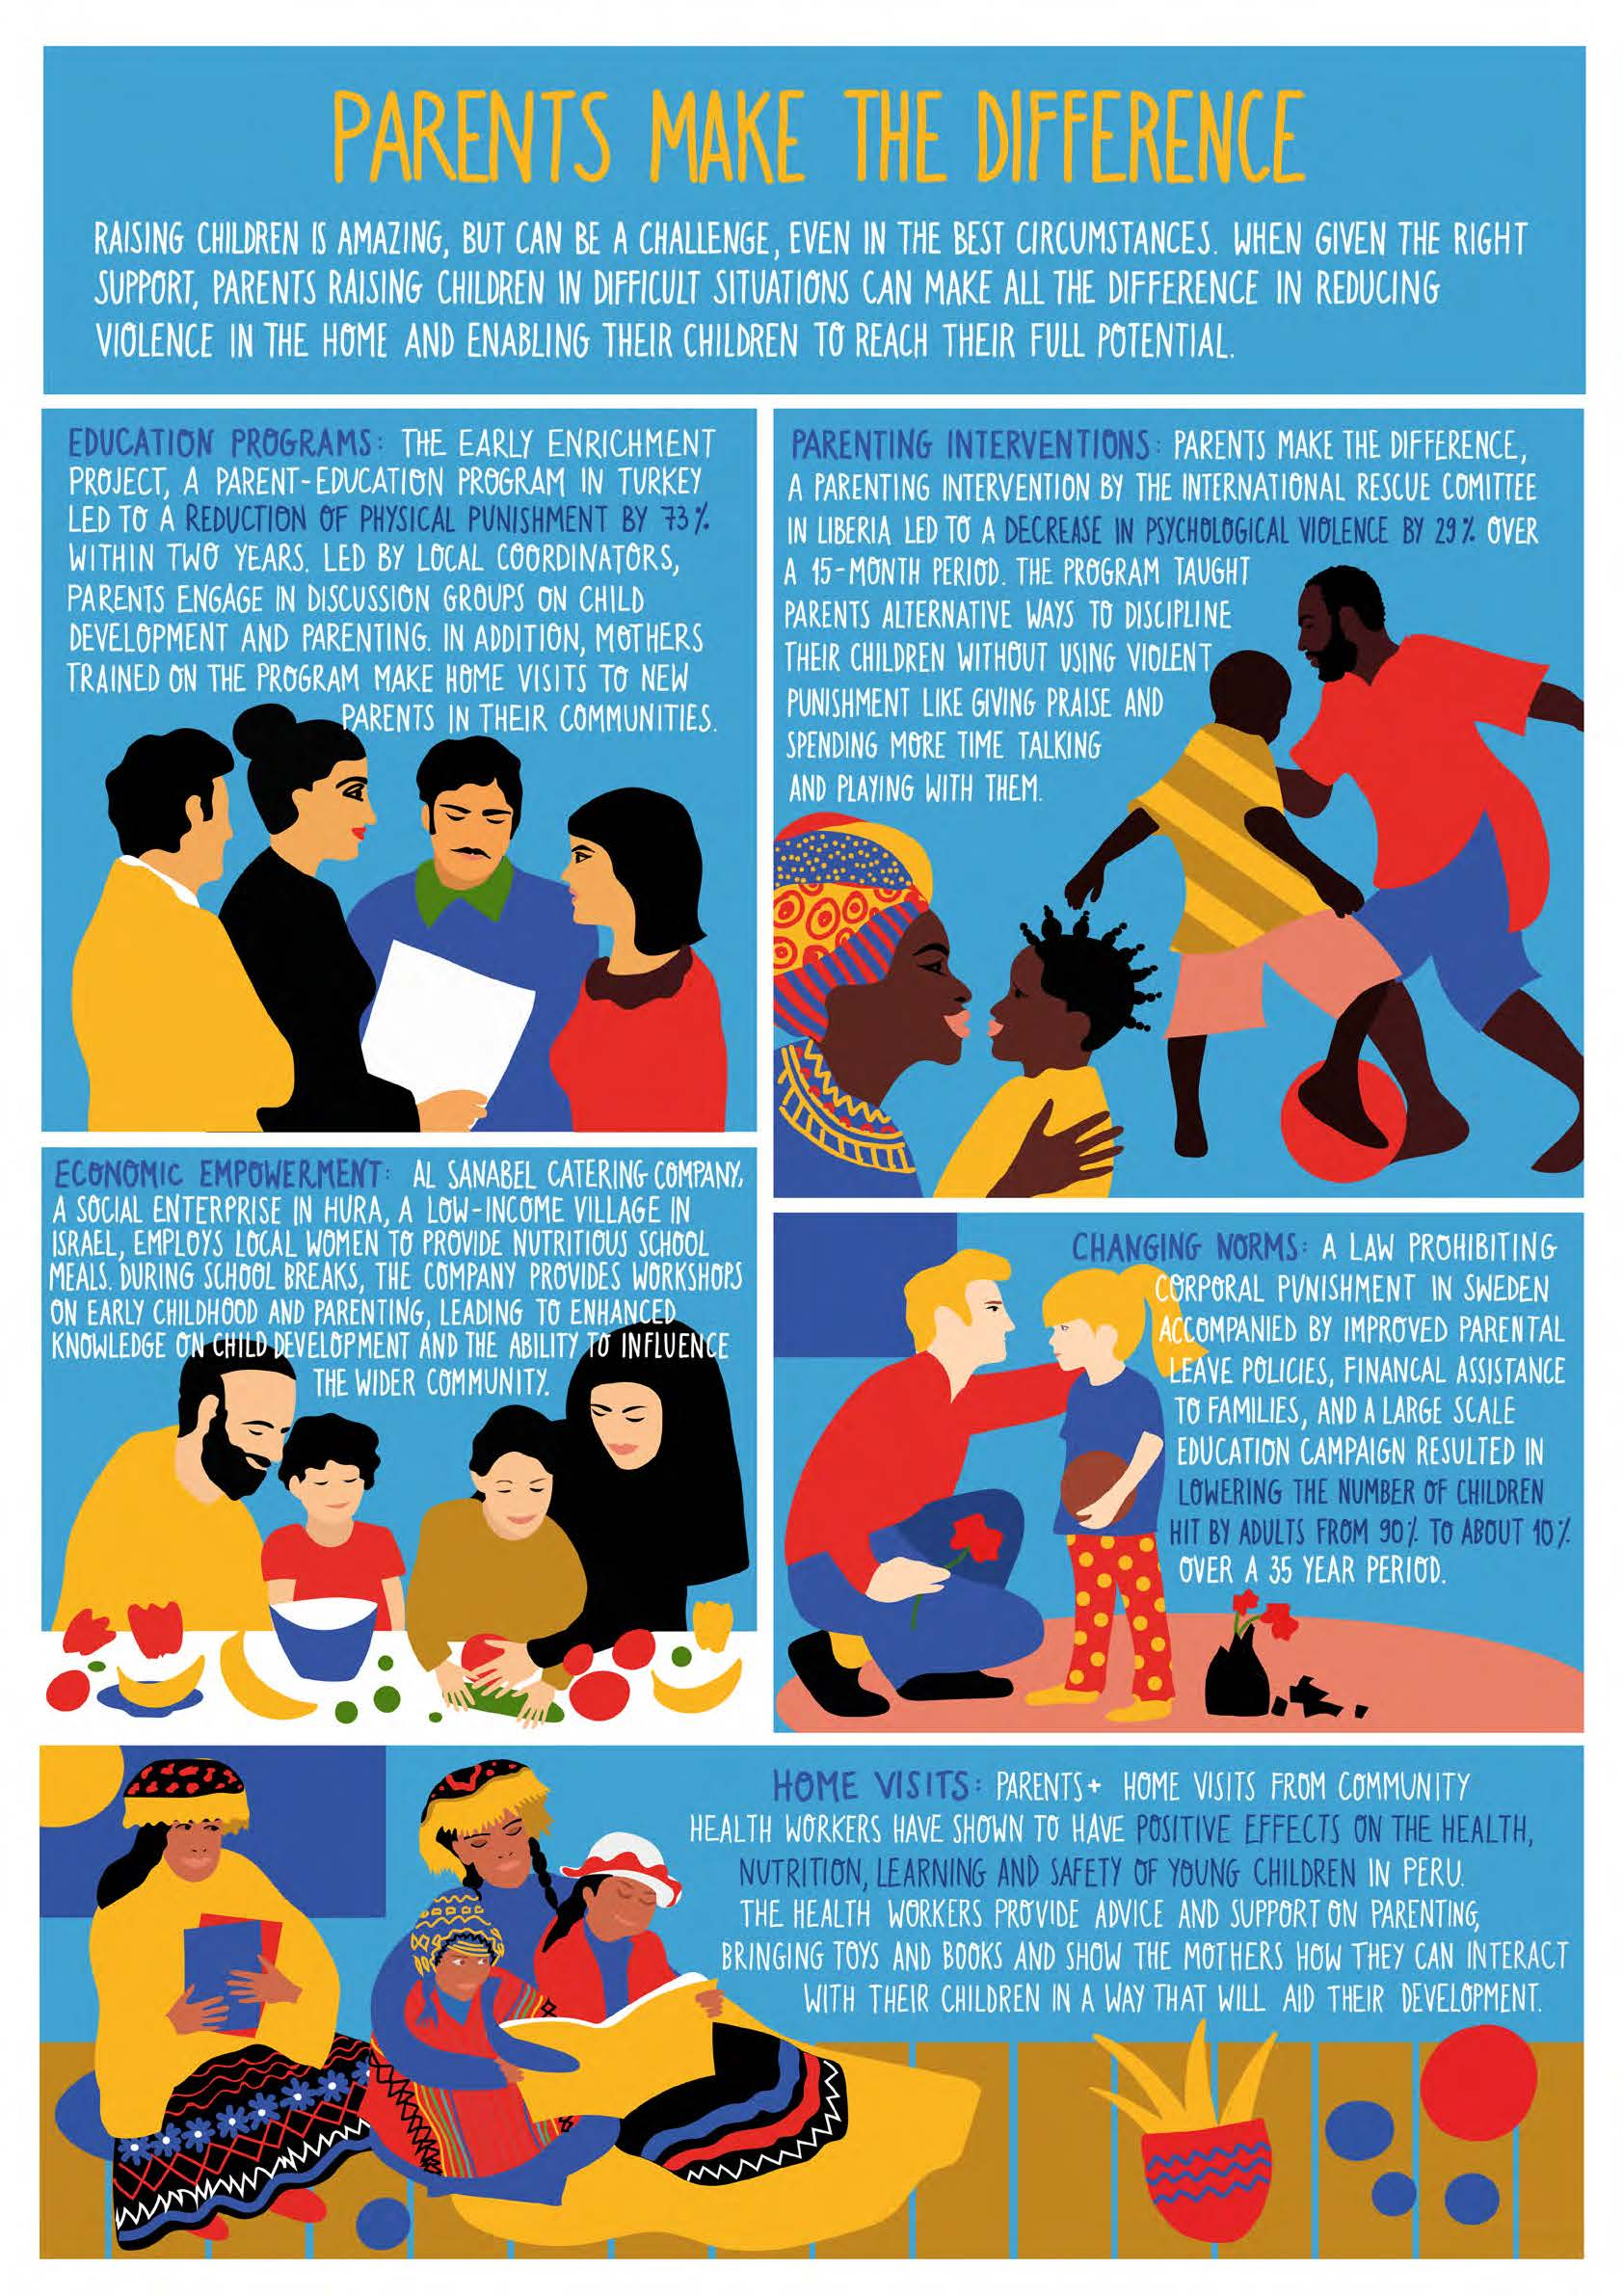 CLIENT:  Bernard van Leer Foundation  PROJECT: Parents Make the Difference ILLUSTRATIONS:  Joanna Gniady